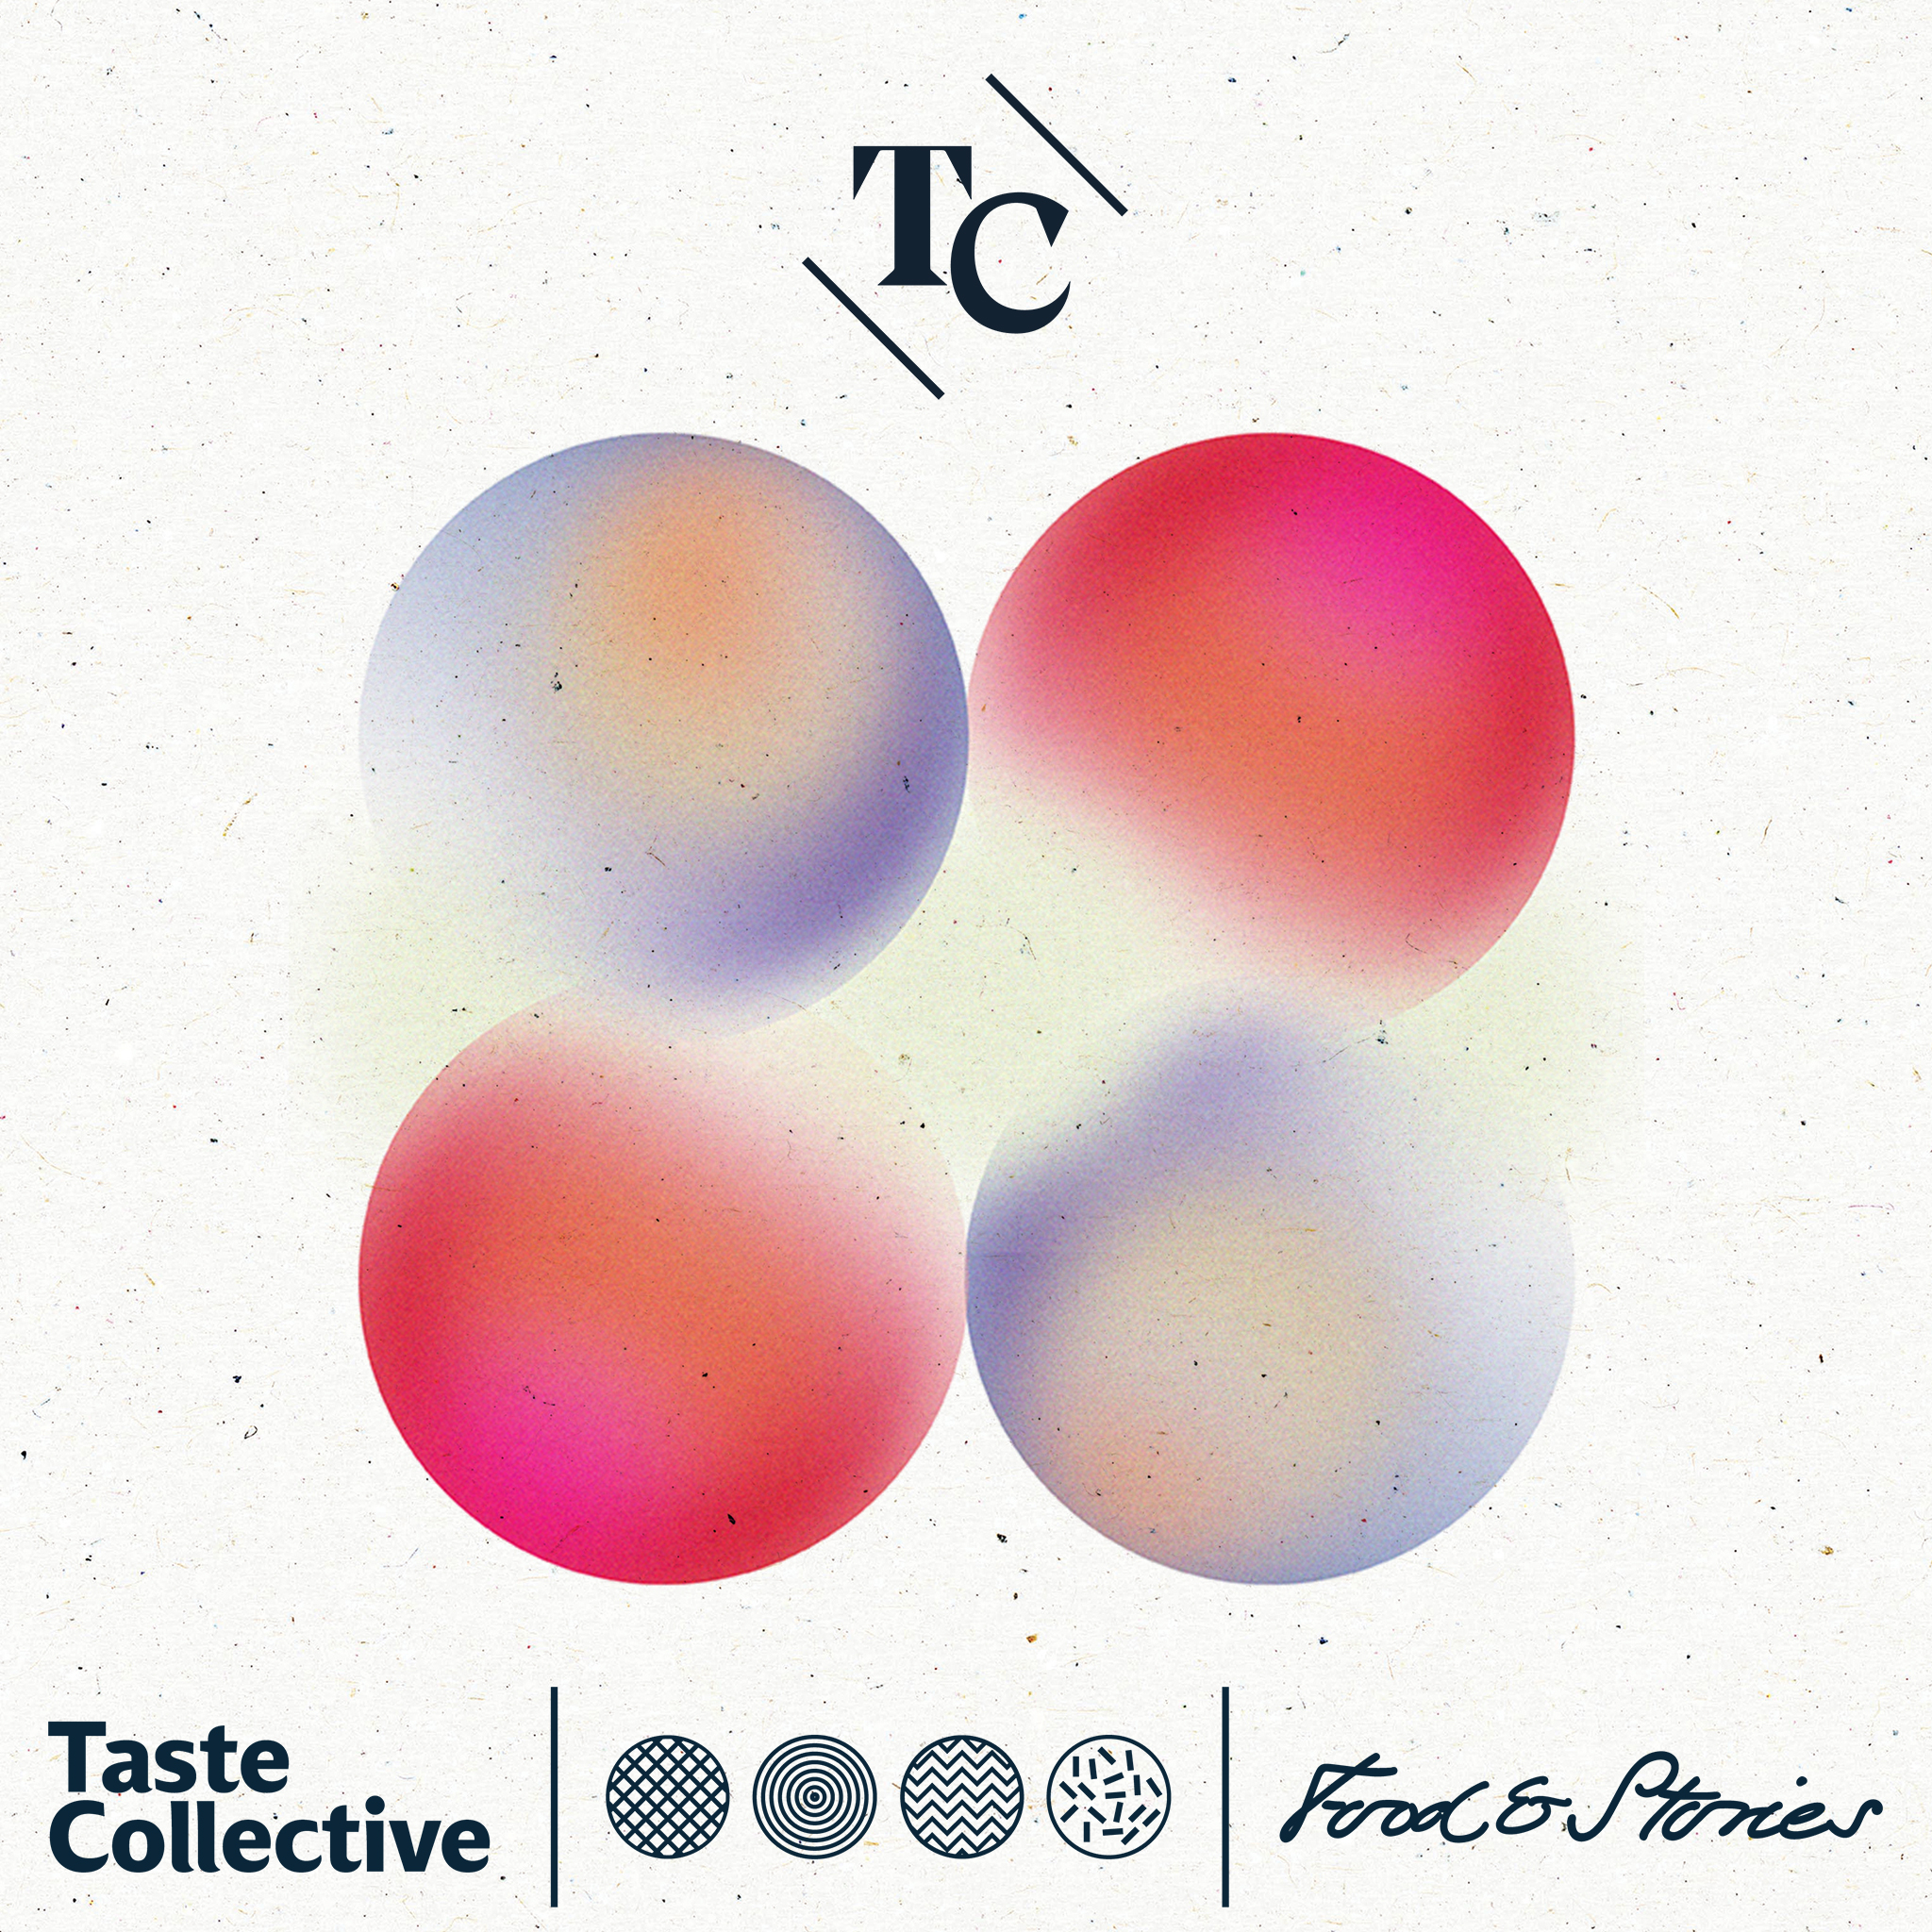 About Us - Taste Collective ideates and executes tailored food and beverage solutions for brands looking to enter or optimise their position in the Chinese market. Take the next step and send us a message - we can't wait to hear from you.